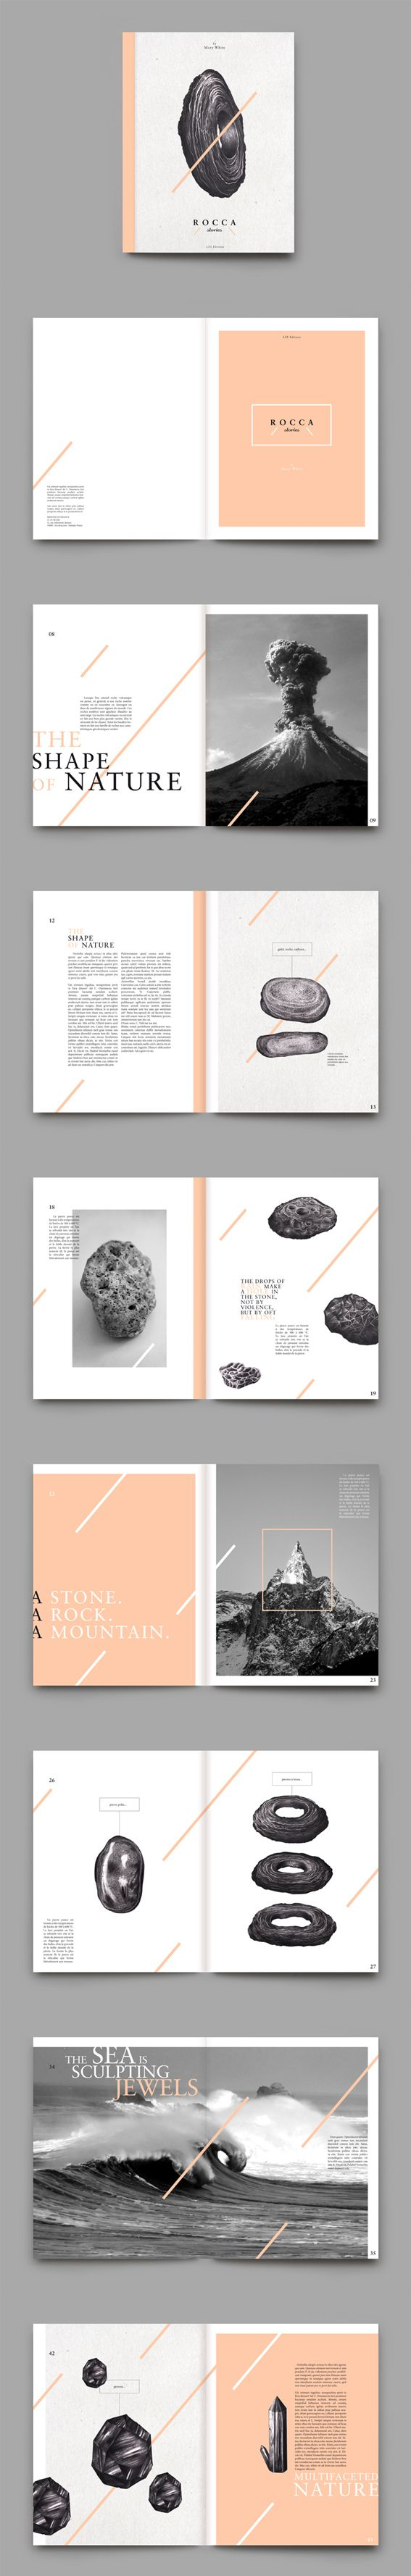 R O C C A stories / magazine layout design  Bárbaro, Á., n.d., 'Diseño editorial', Pinterest, viewed 16 August 2015, <https://www.pinterest.com/alvarobarbaro/dise%C3%B1o-editorial/>